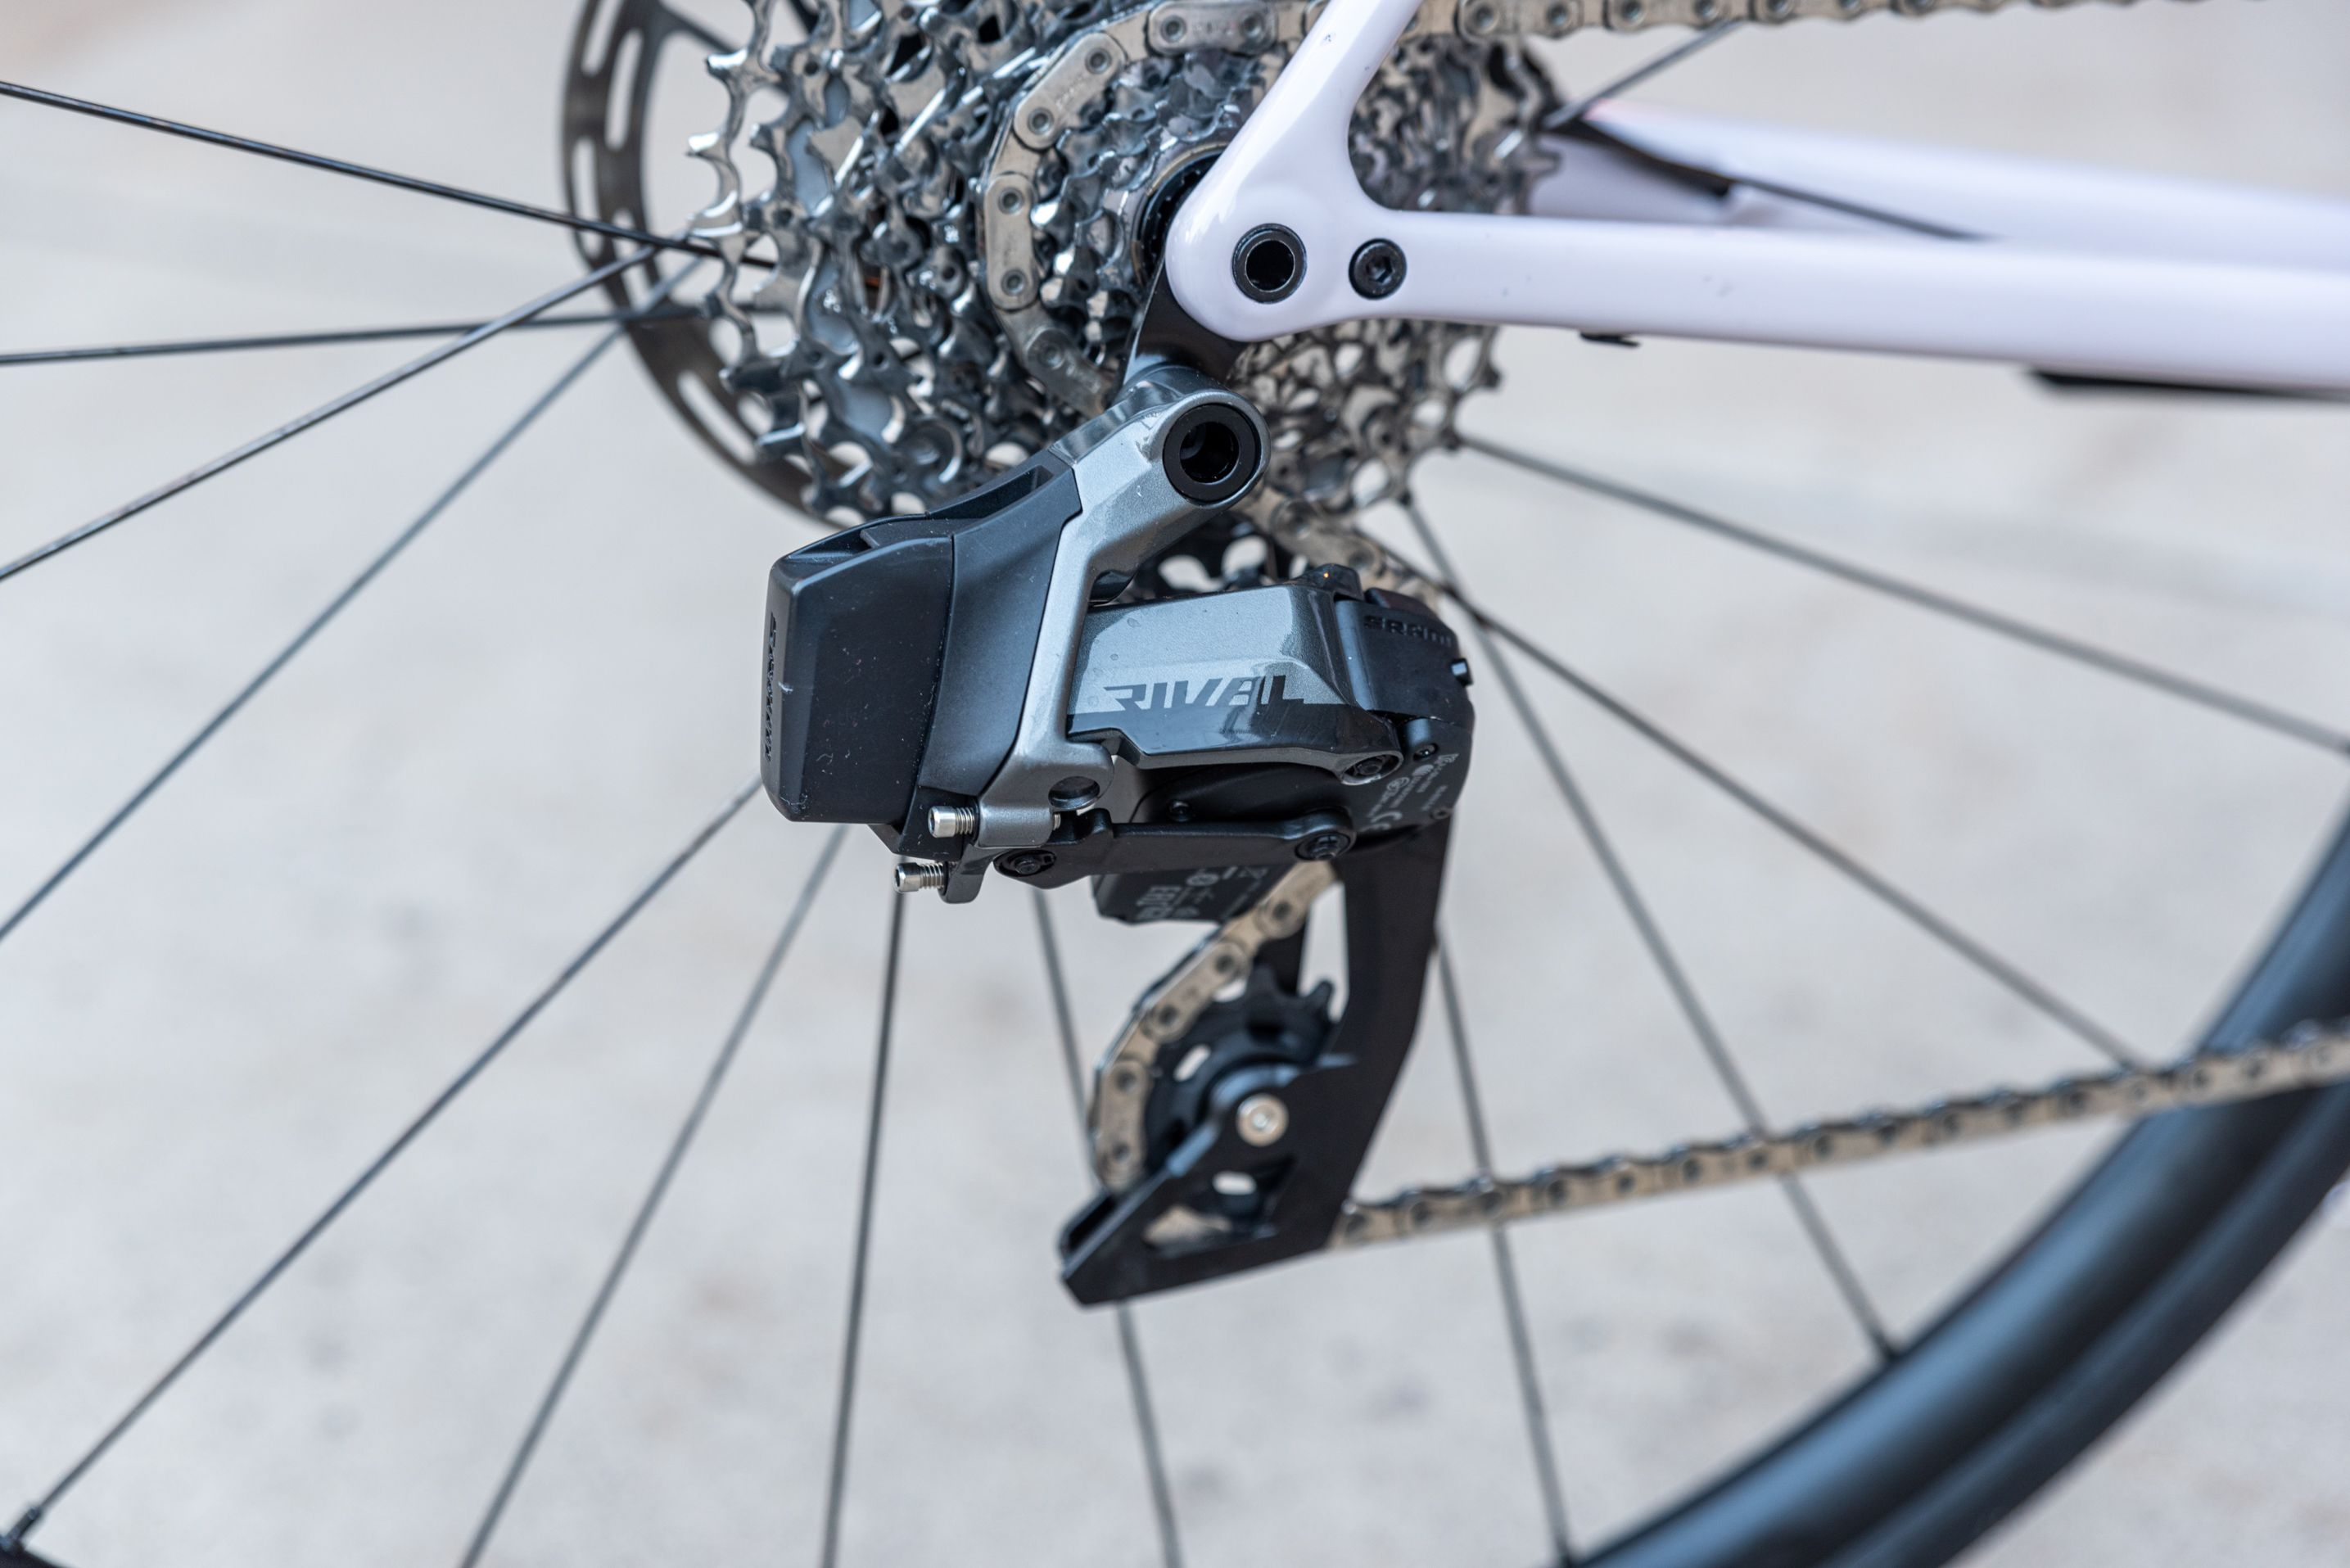 Rival AXS derailleurs use the same motors and electronics as Force/Red AXS derialleurs.